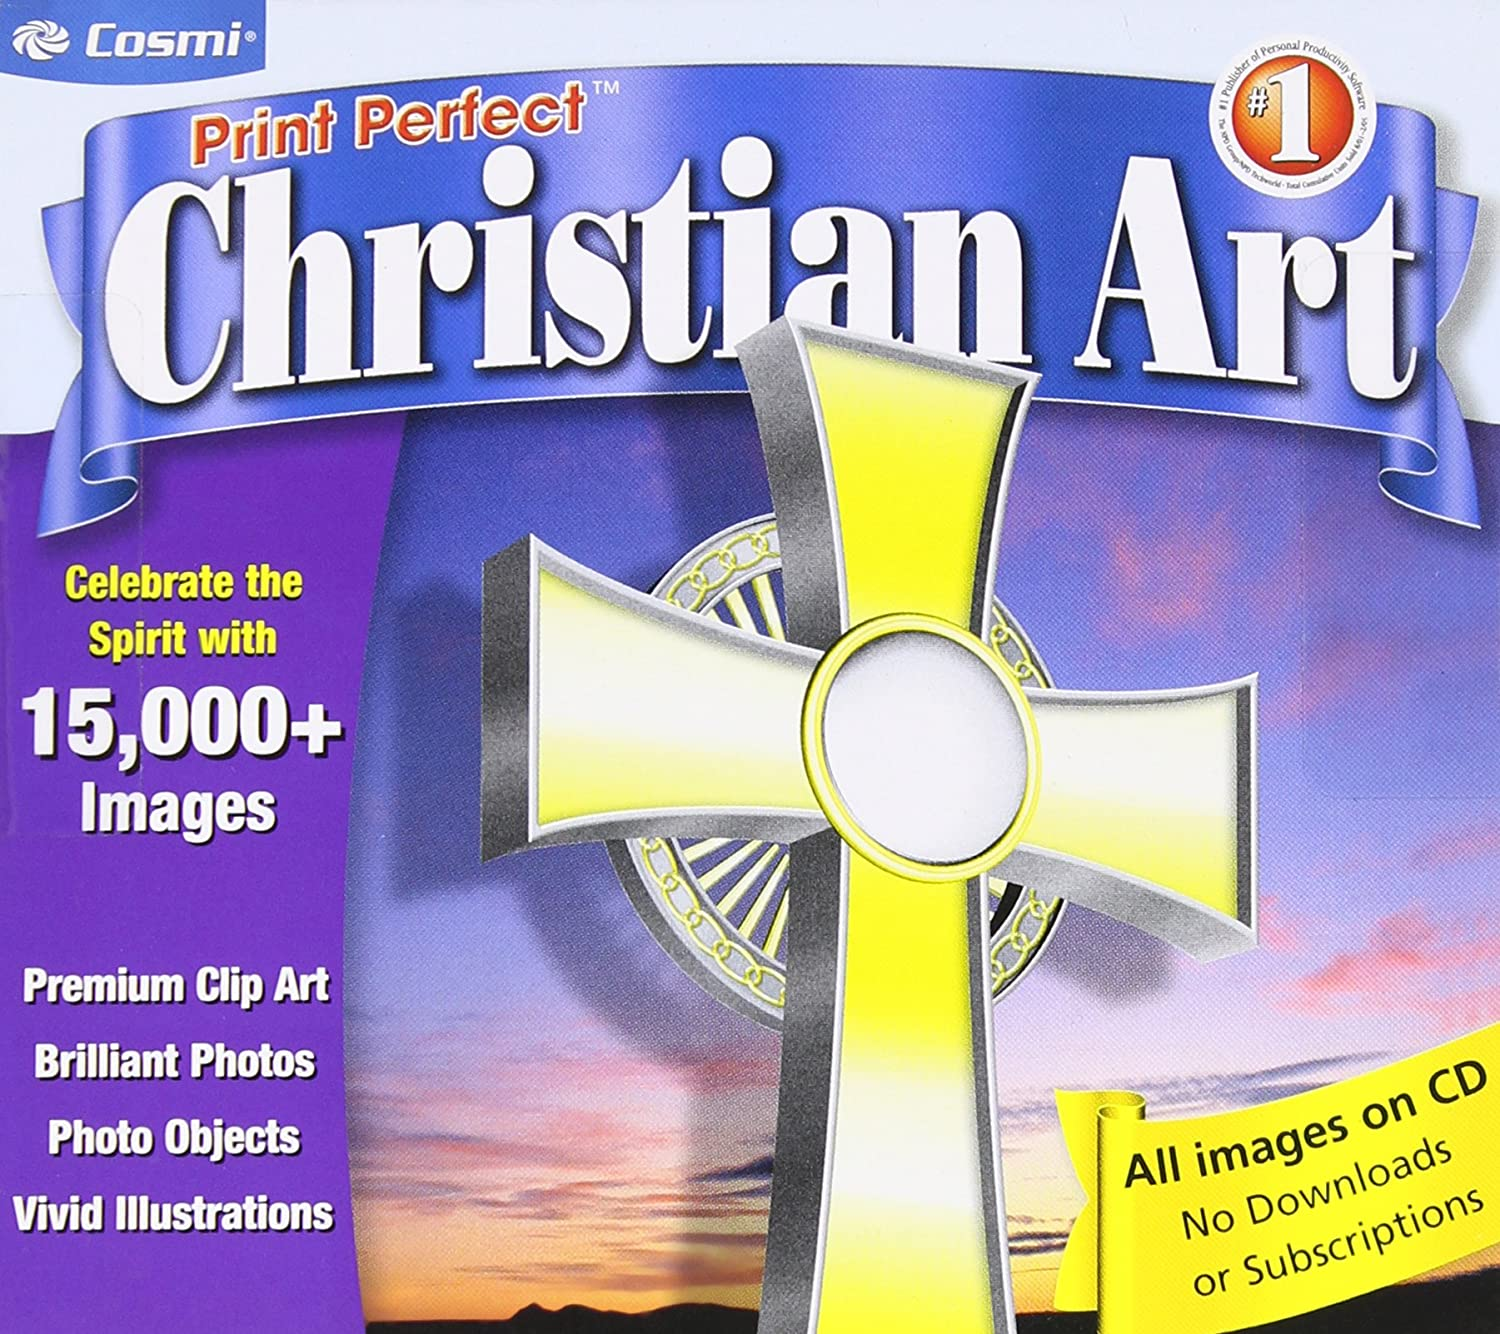 Printperfect Christian Clipart with 15,000+ Images: Amazon.ca ...